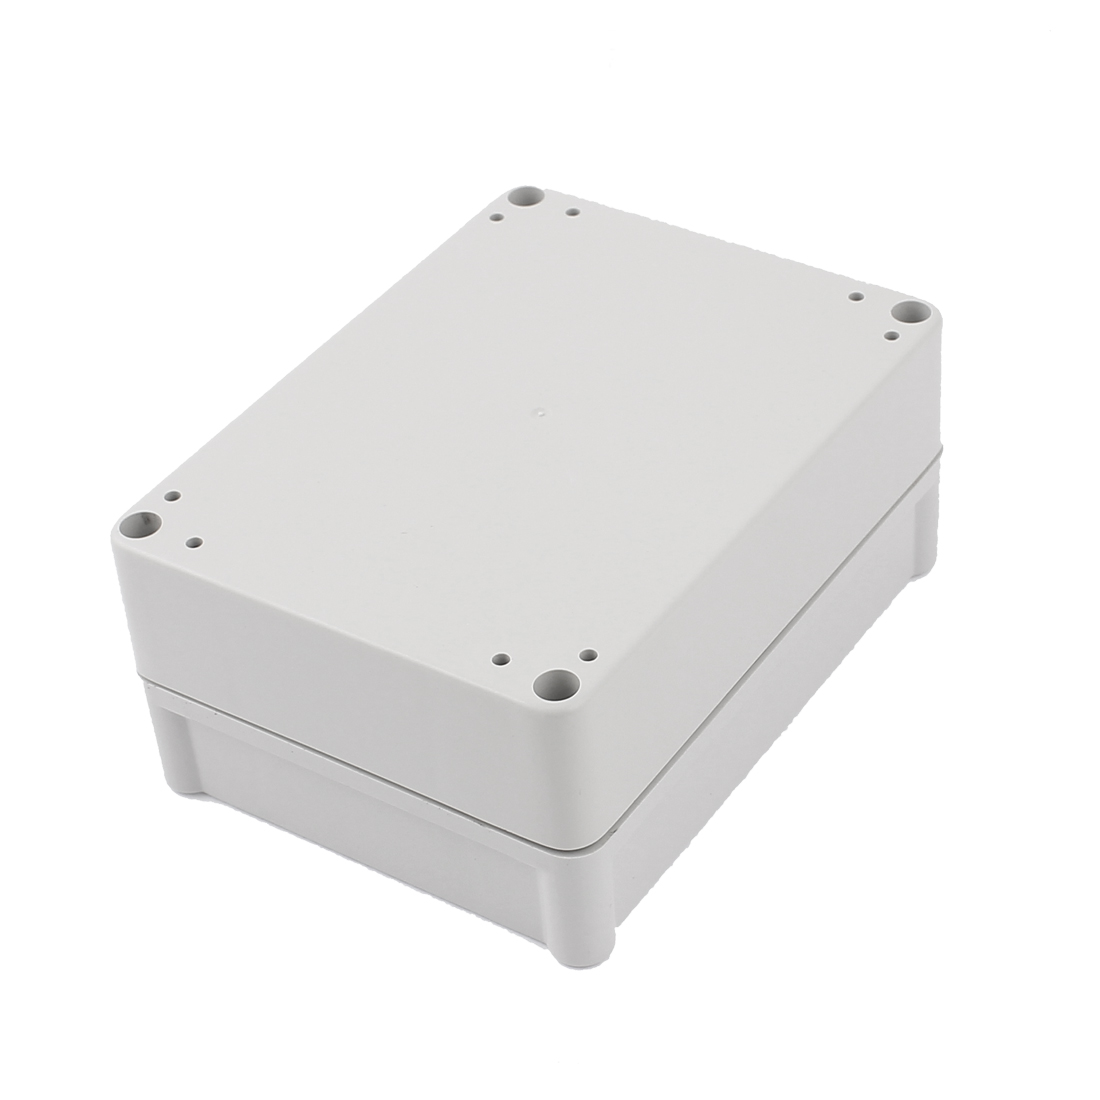 Dustproof IP65 Plastic Sealed Electronic Project Case Junction Box 140x105x63mm